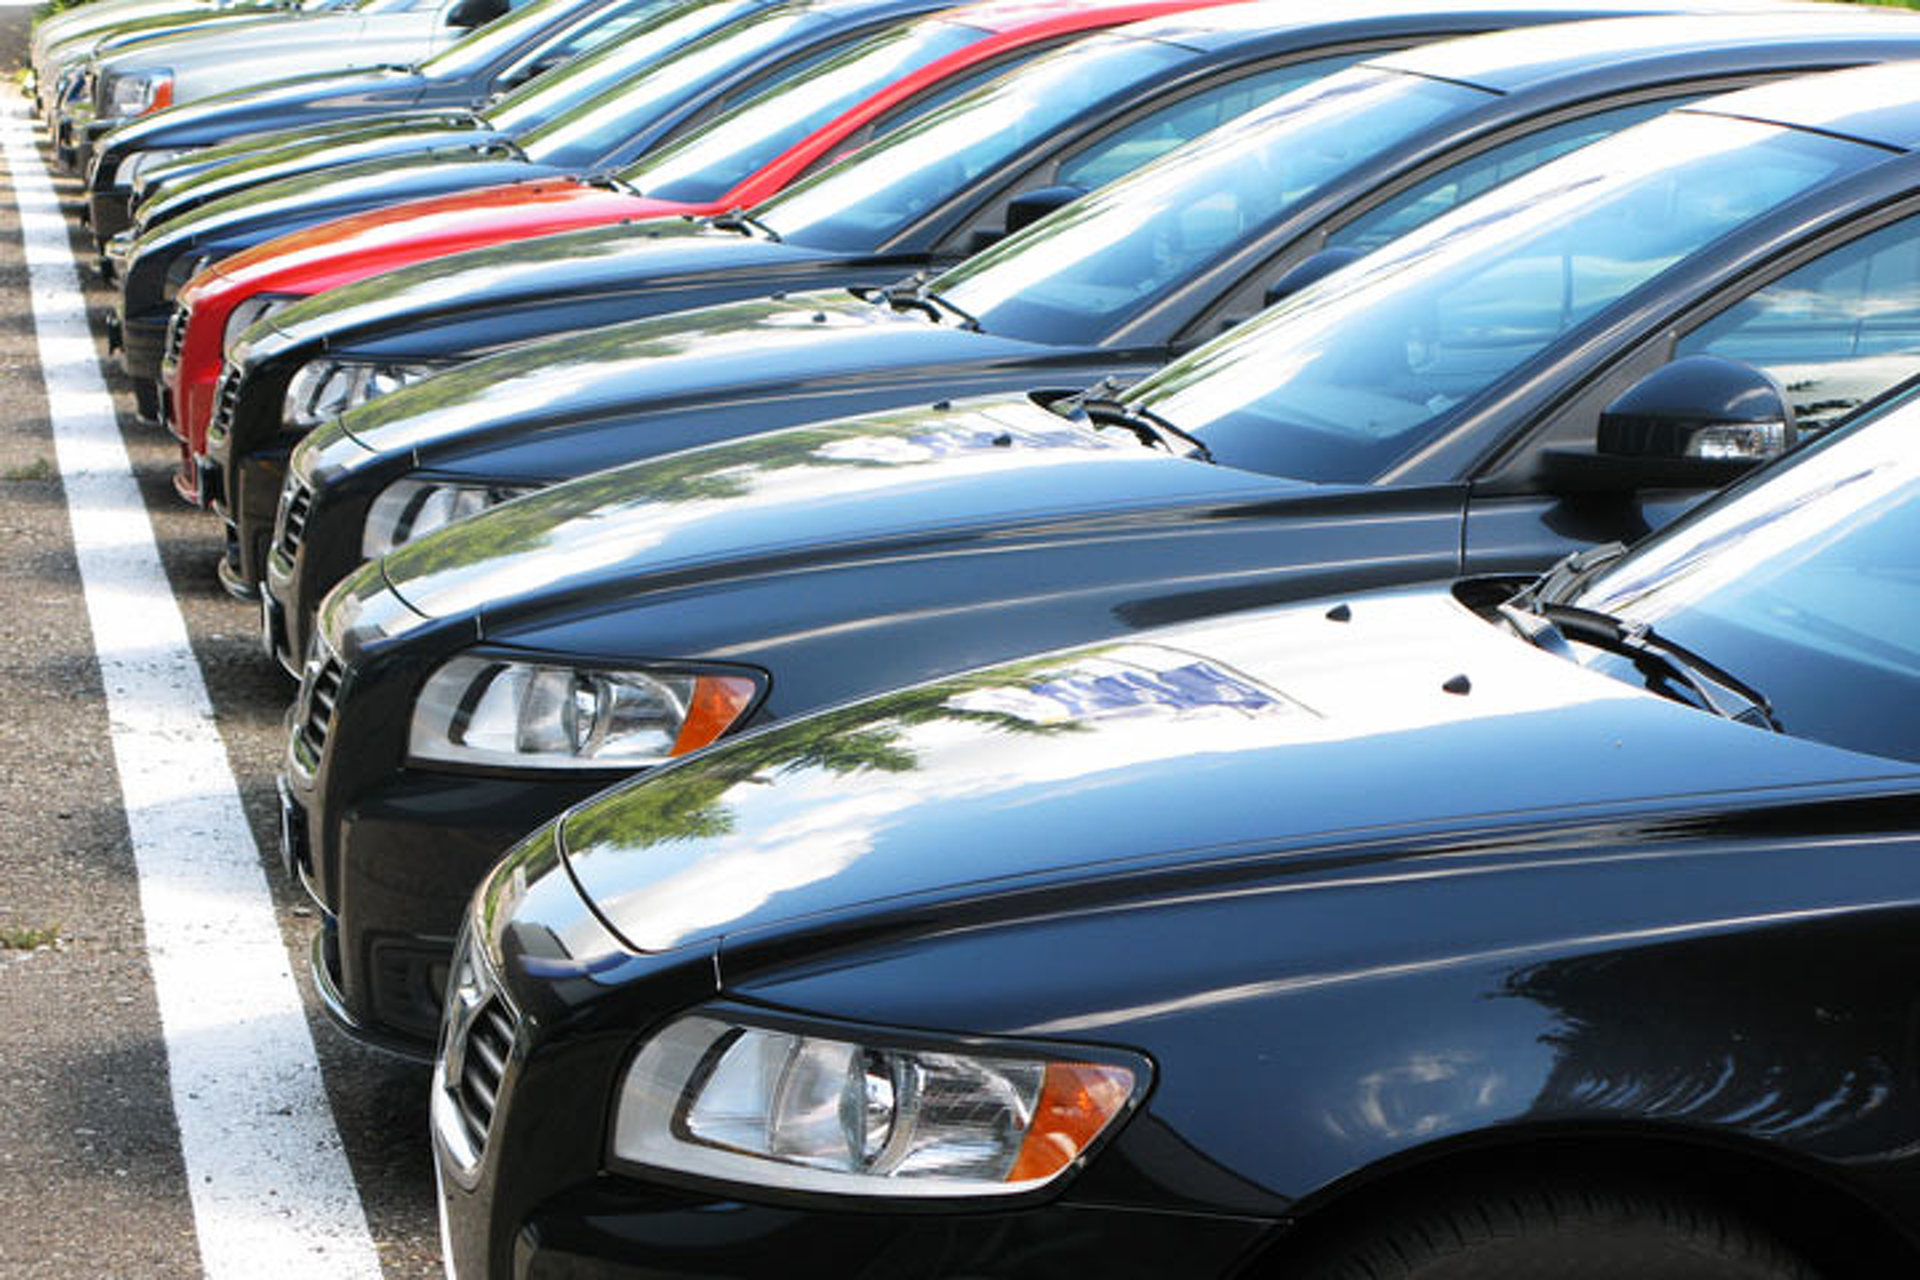 What's The Cheapest State to Buy a Car?